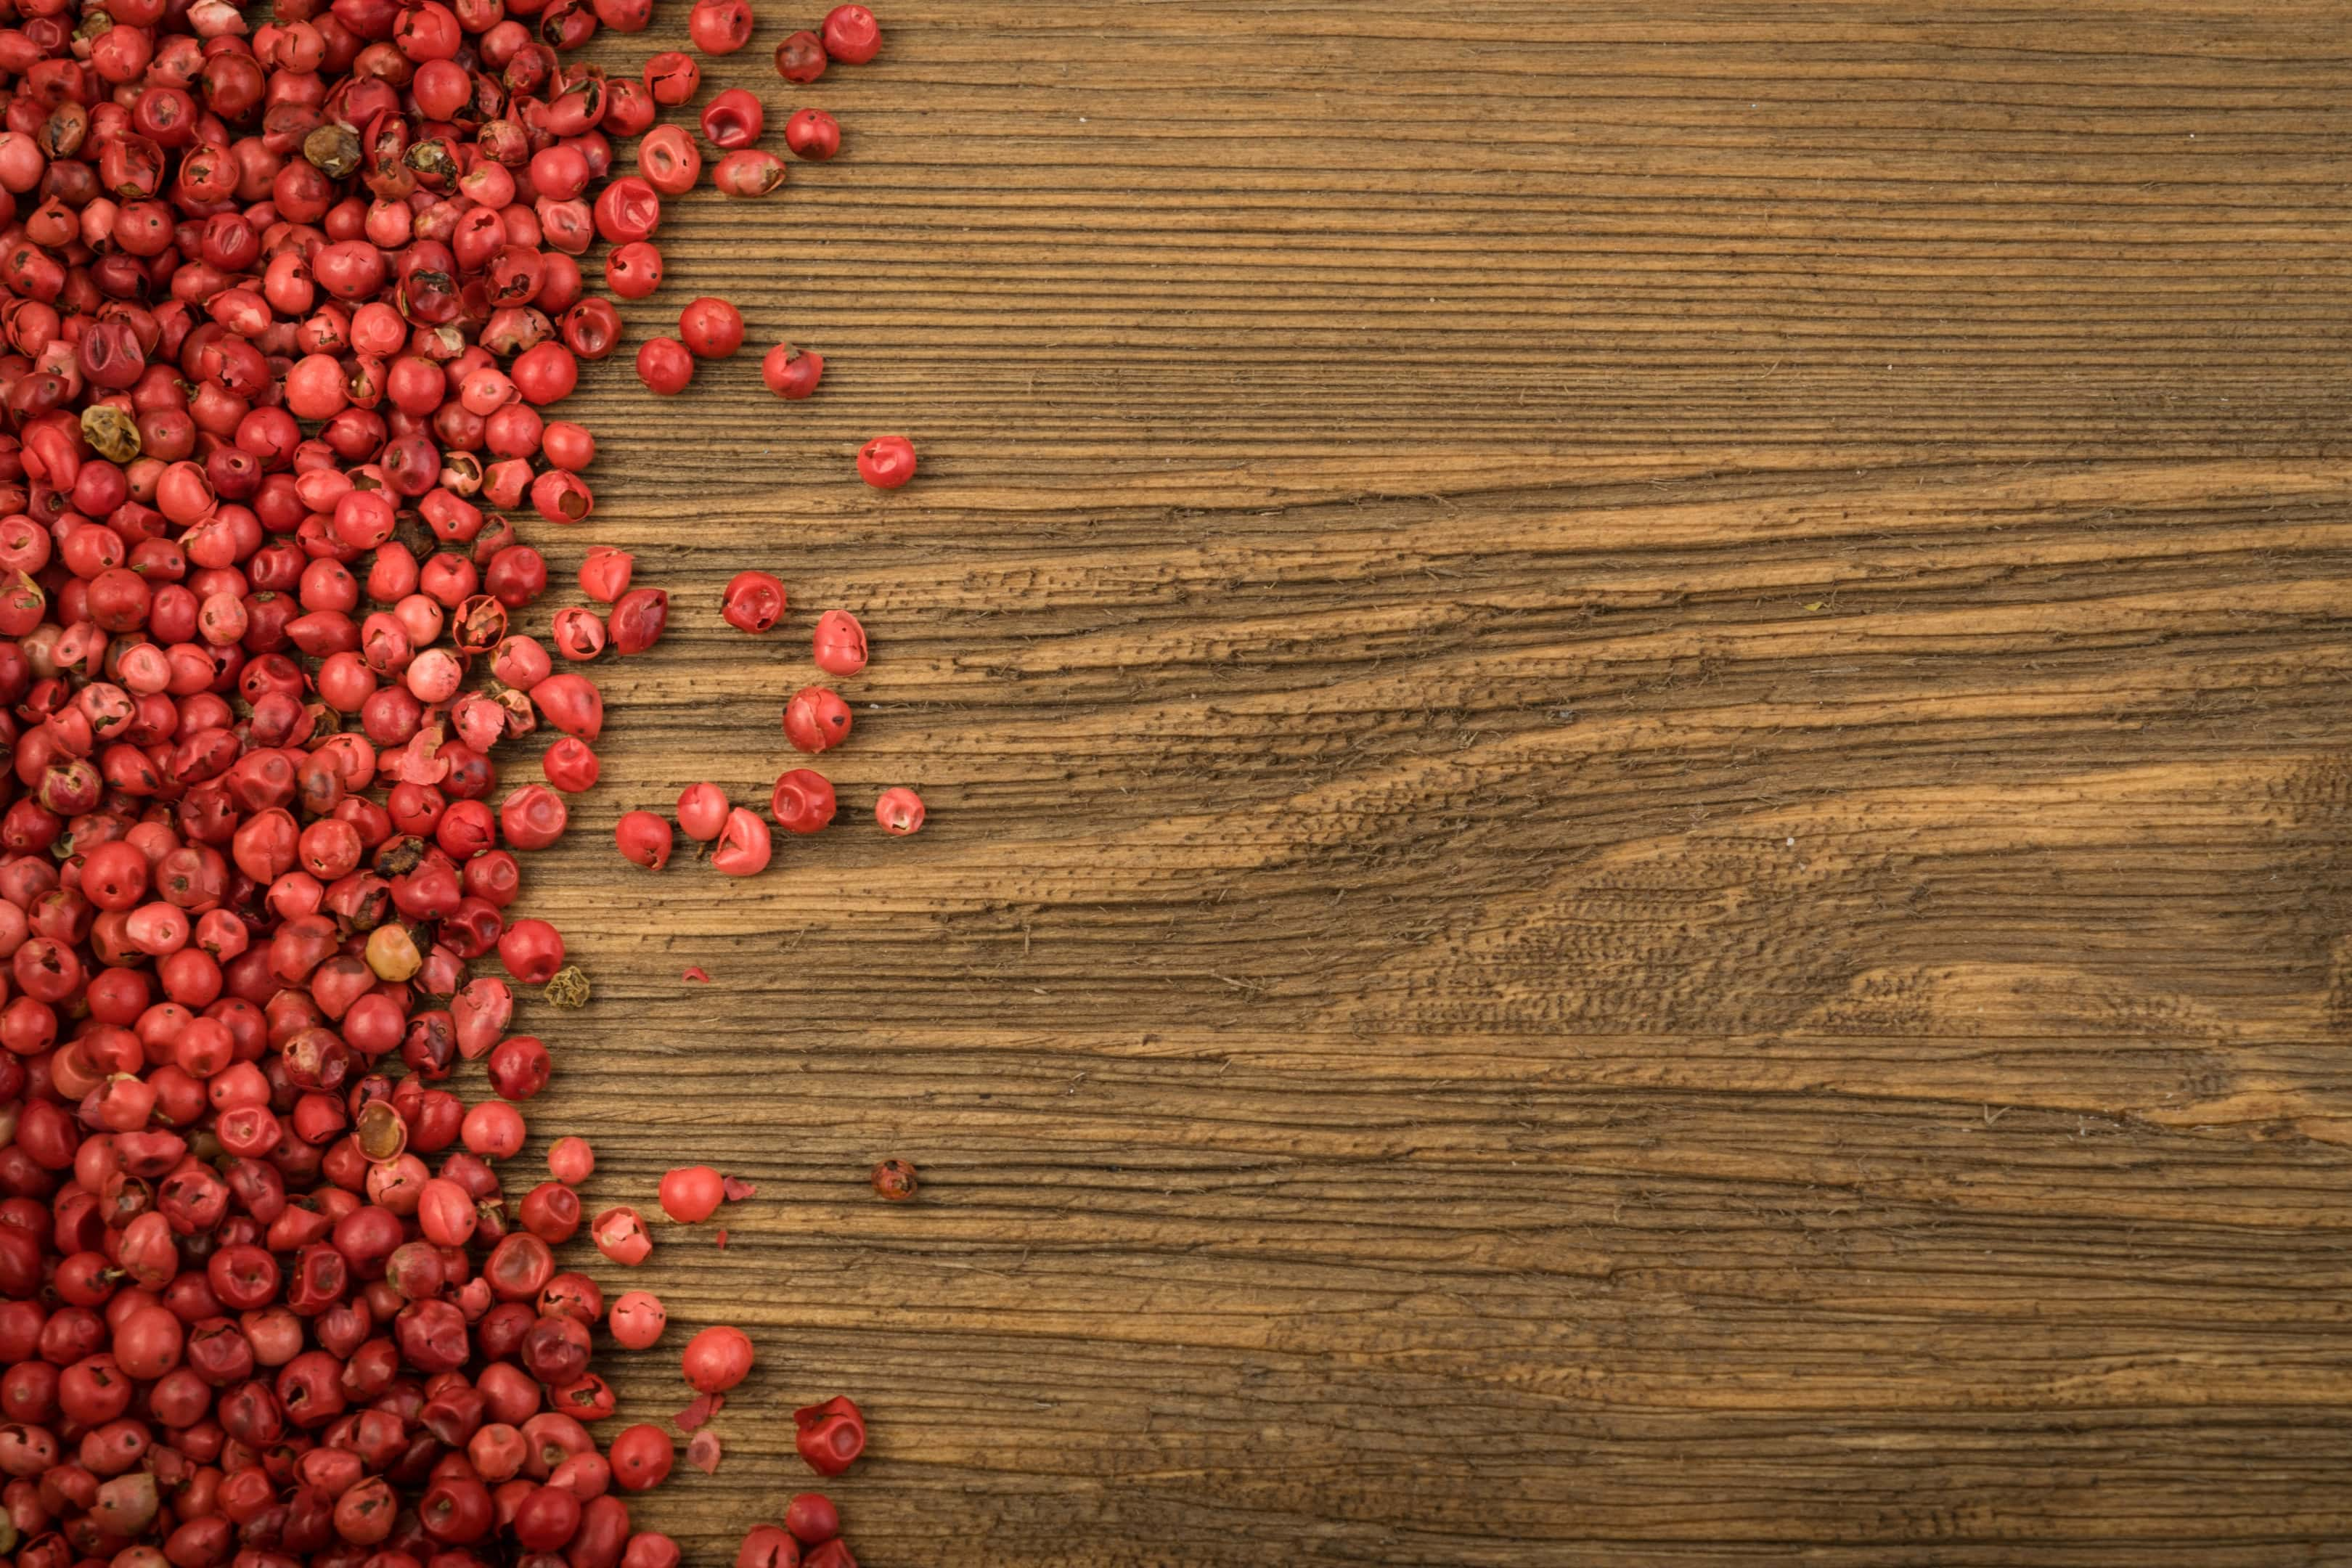 Pink peppercorn on wooden table